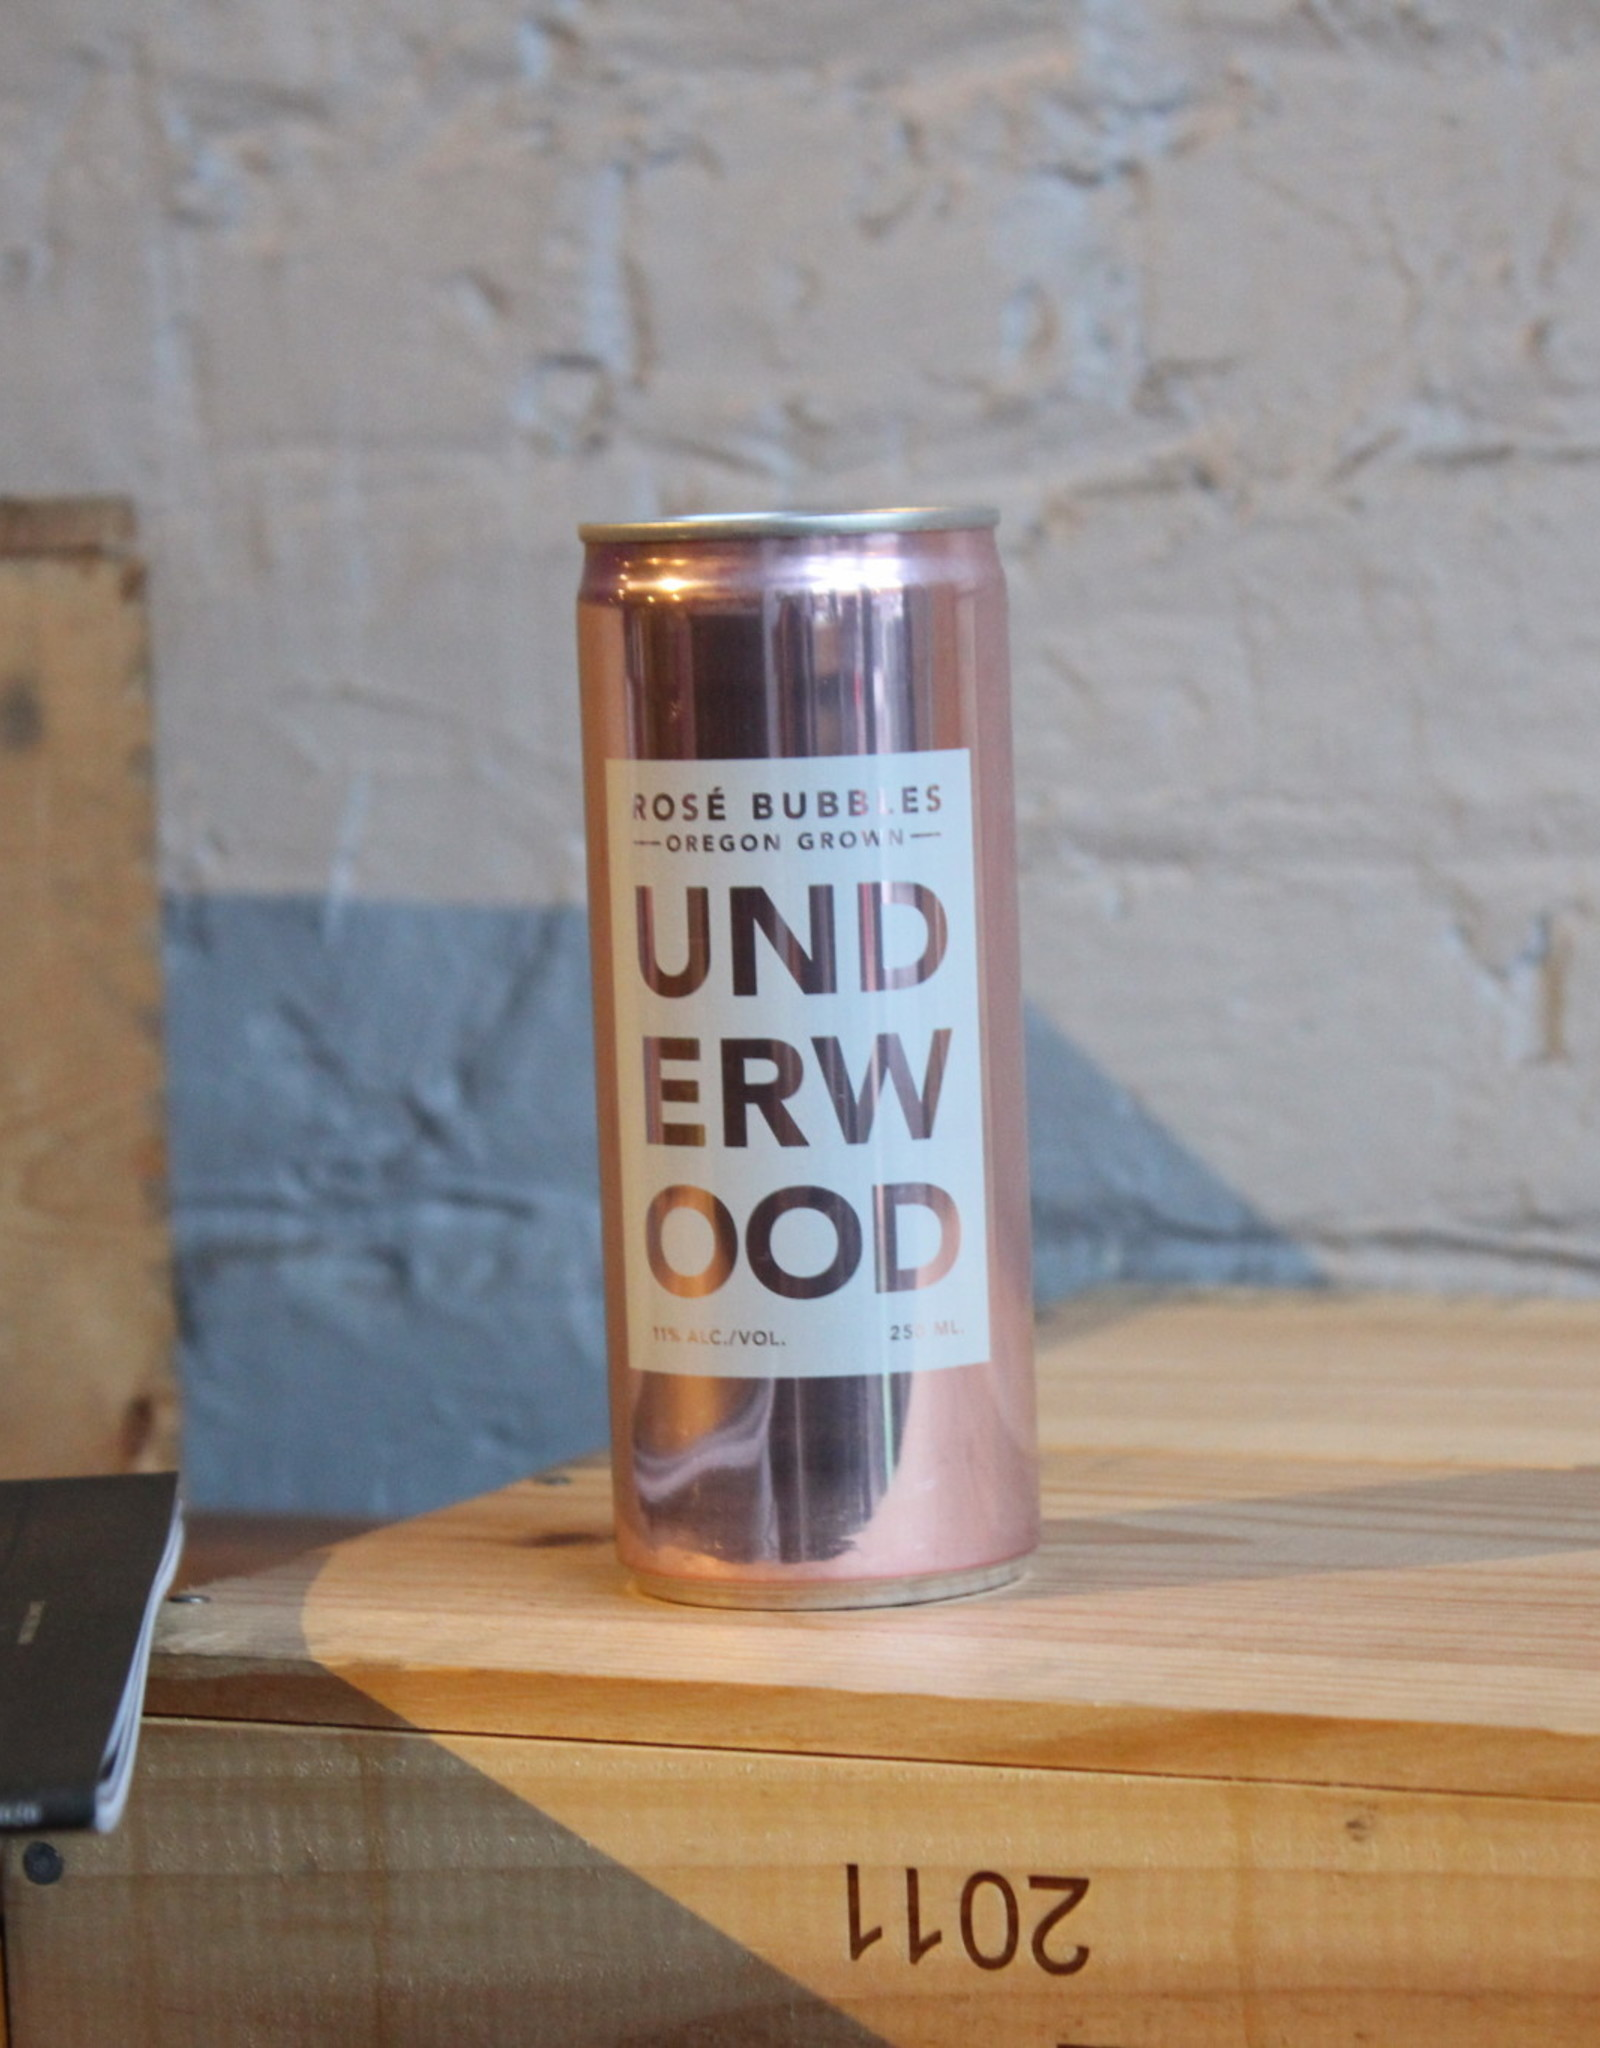 Wine NV Underwood Bubbles Sparkling Rose - Oregon (250ml slim can)